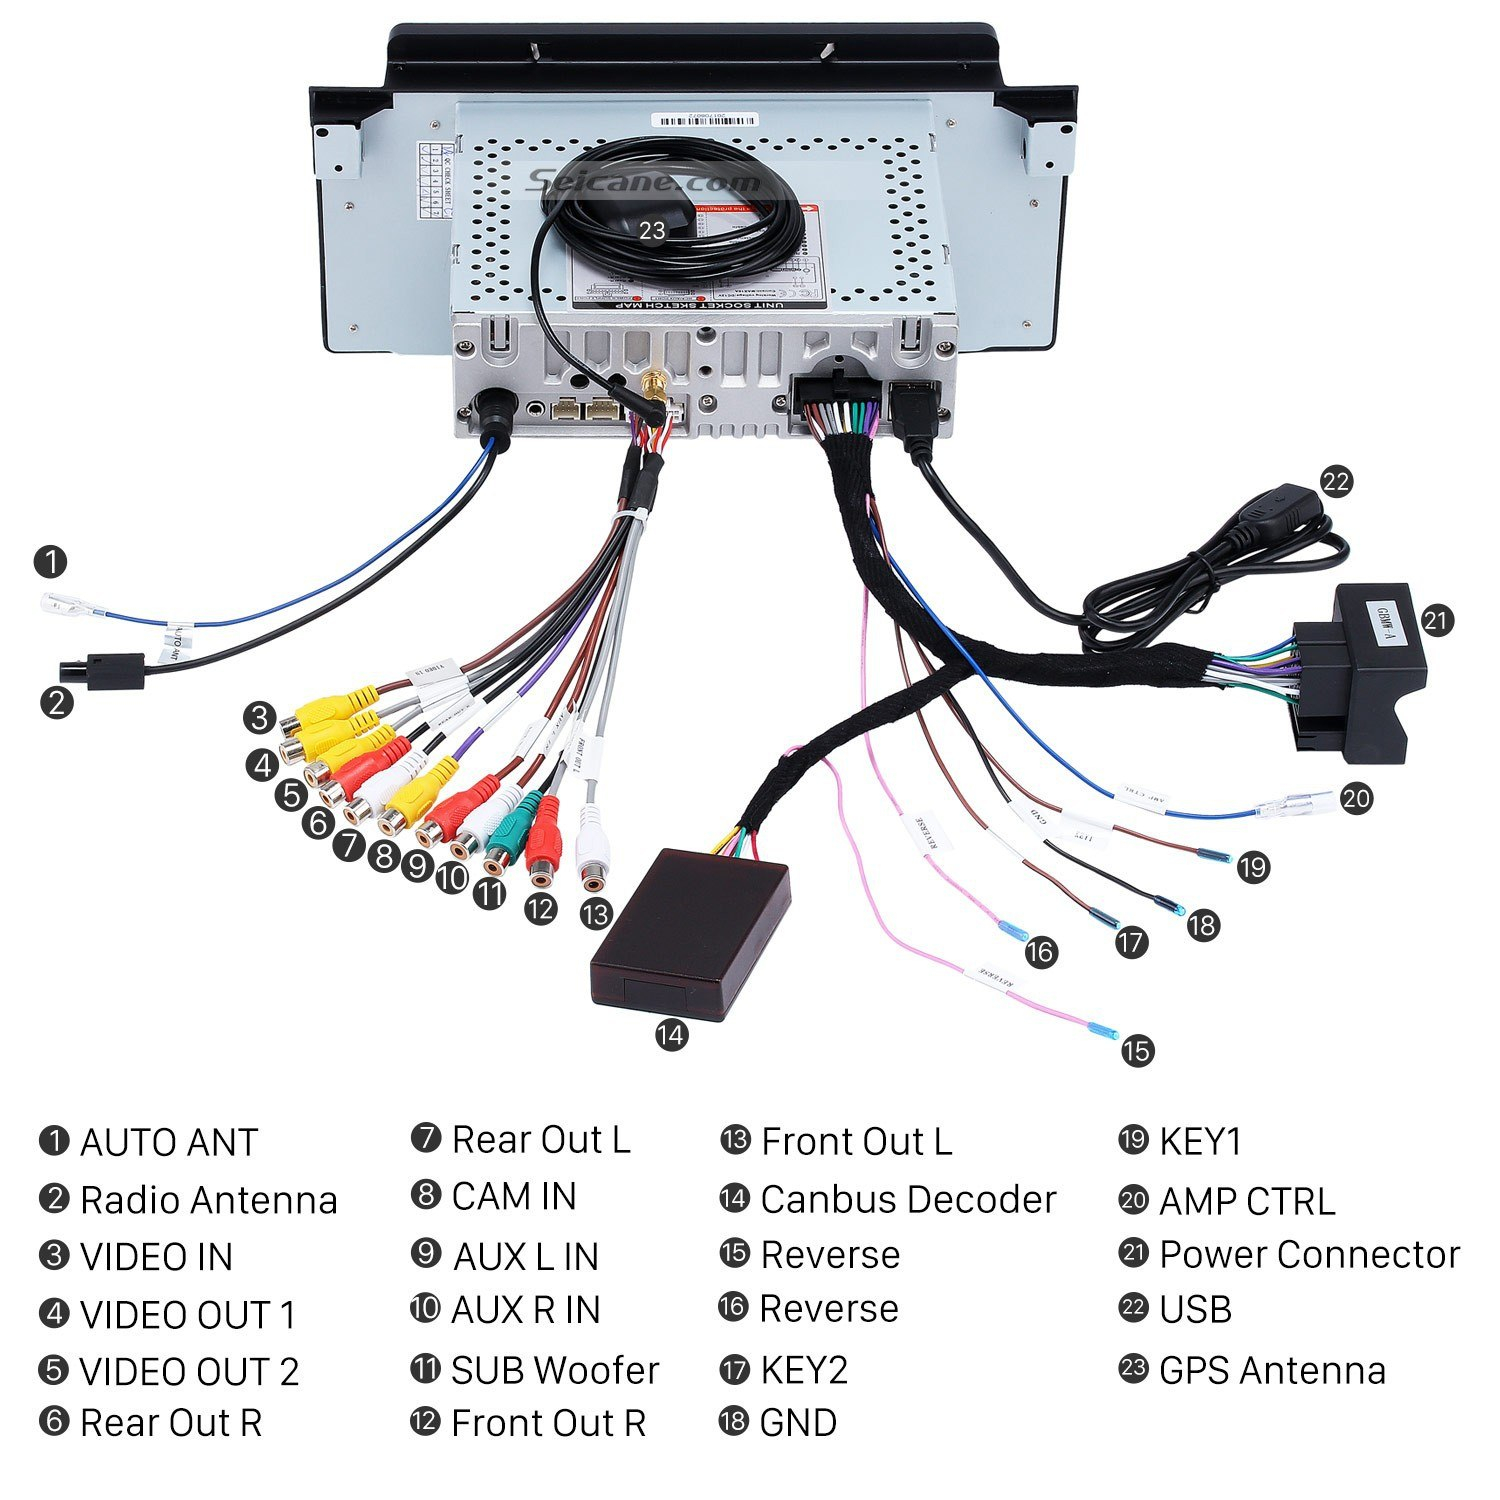 bmw x5 stereo wiring diagram Collection-The Wiring Diagram – Amazing Light Wiring Diagram Best Inch 2000 2007 Bmw X5 E53 3 0i 3 0d 4 1-r